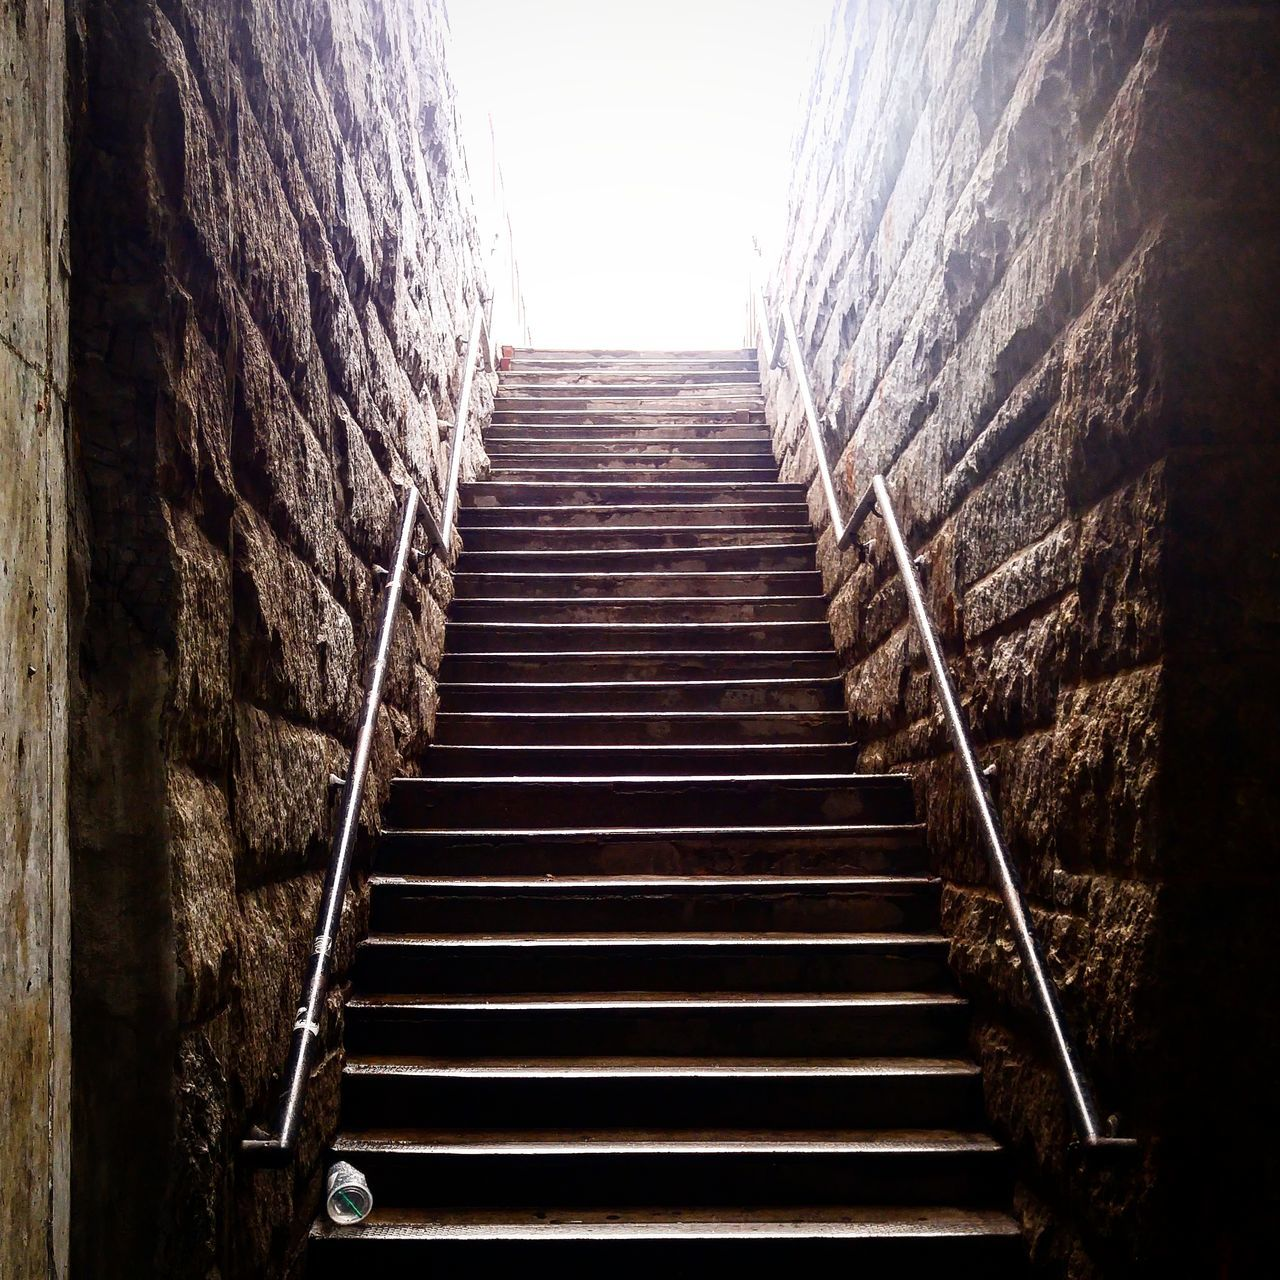 steps and staircases, steps, staircase, indoors, no people, the way forward, low angle view, day, architecture, close-up